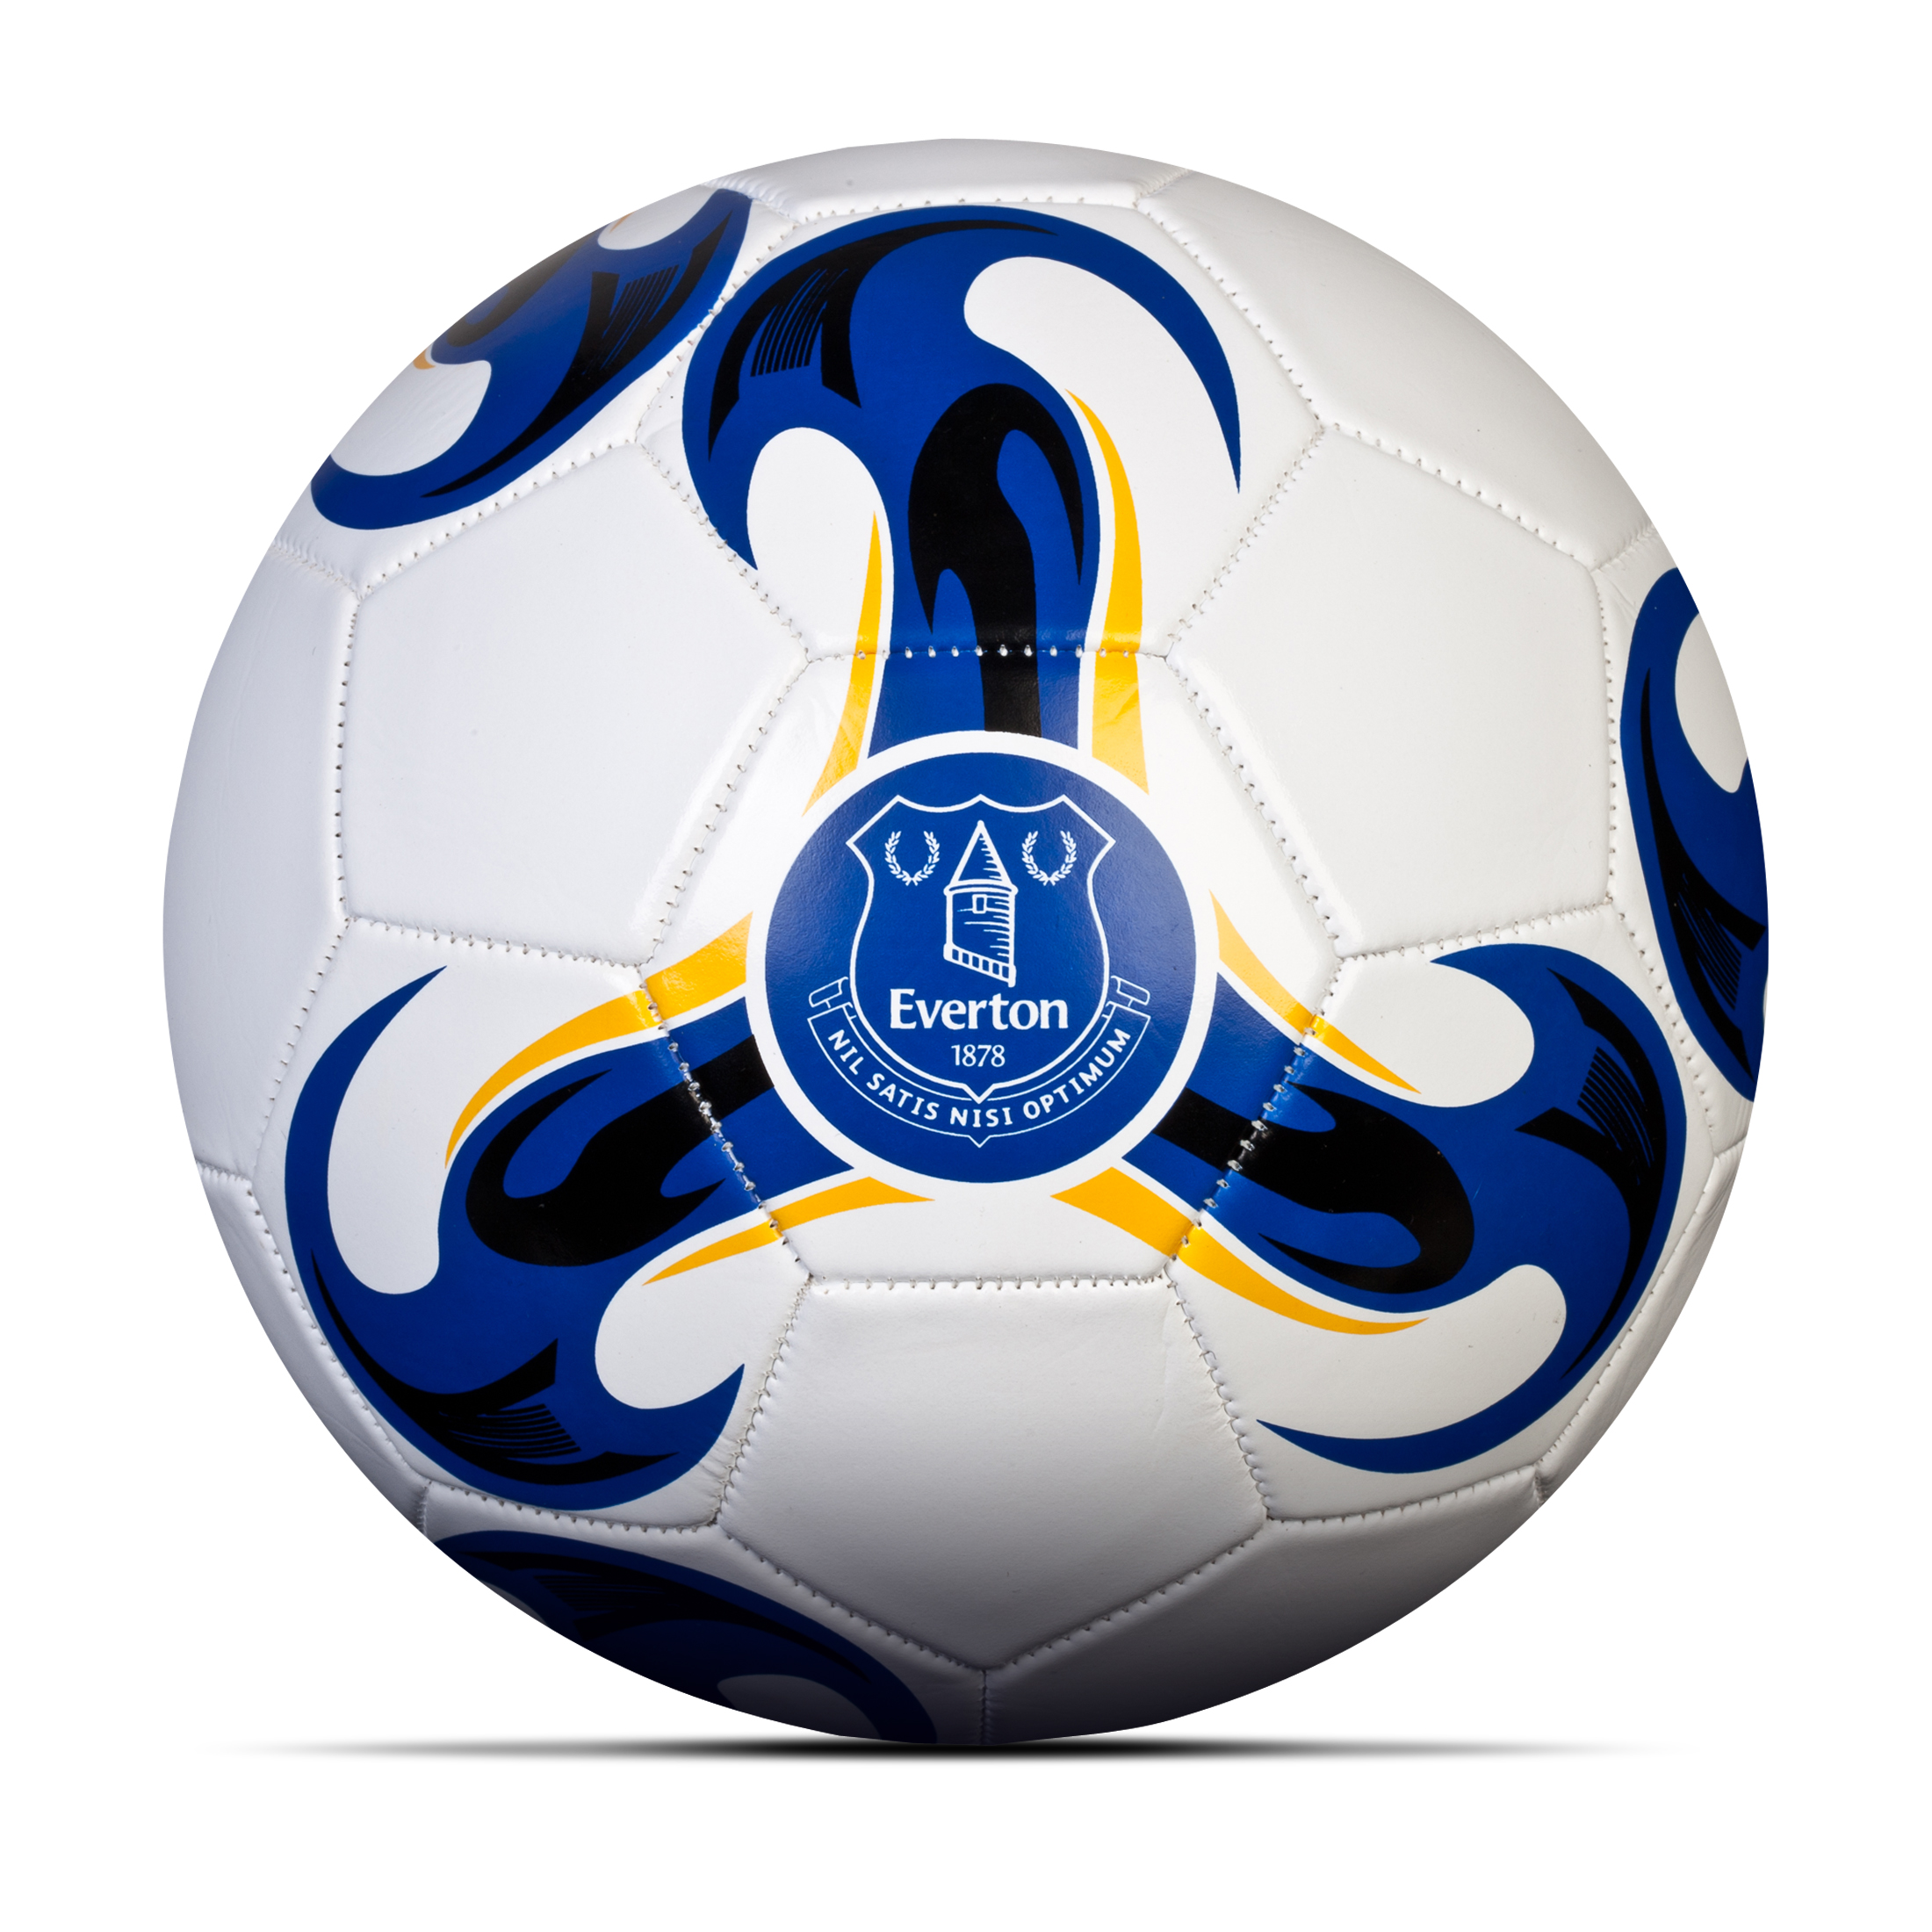 Everton Football - Size 5 - White/Royal